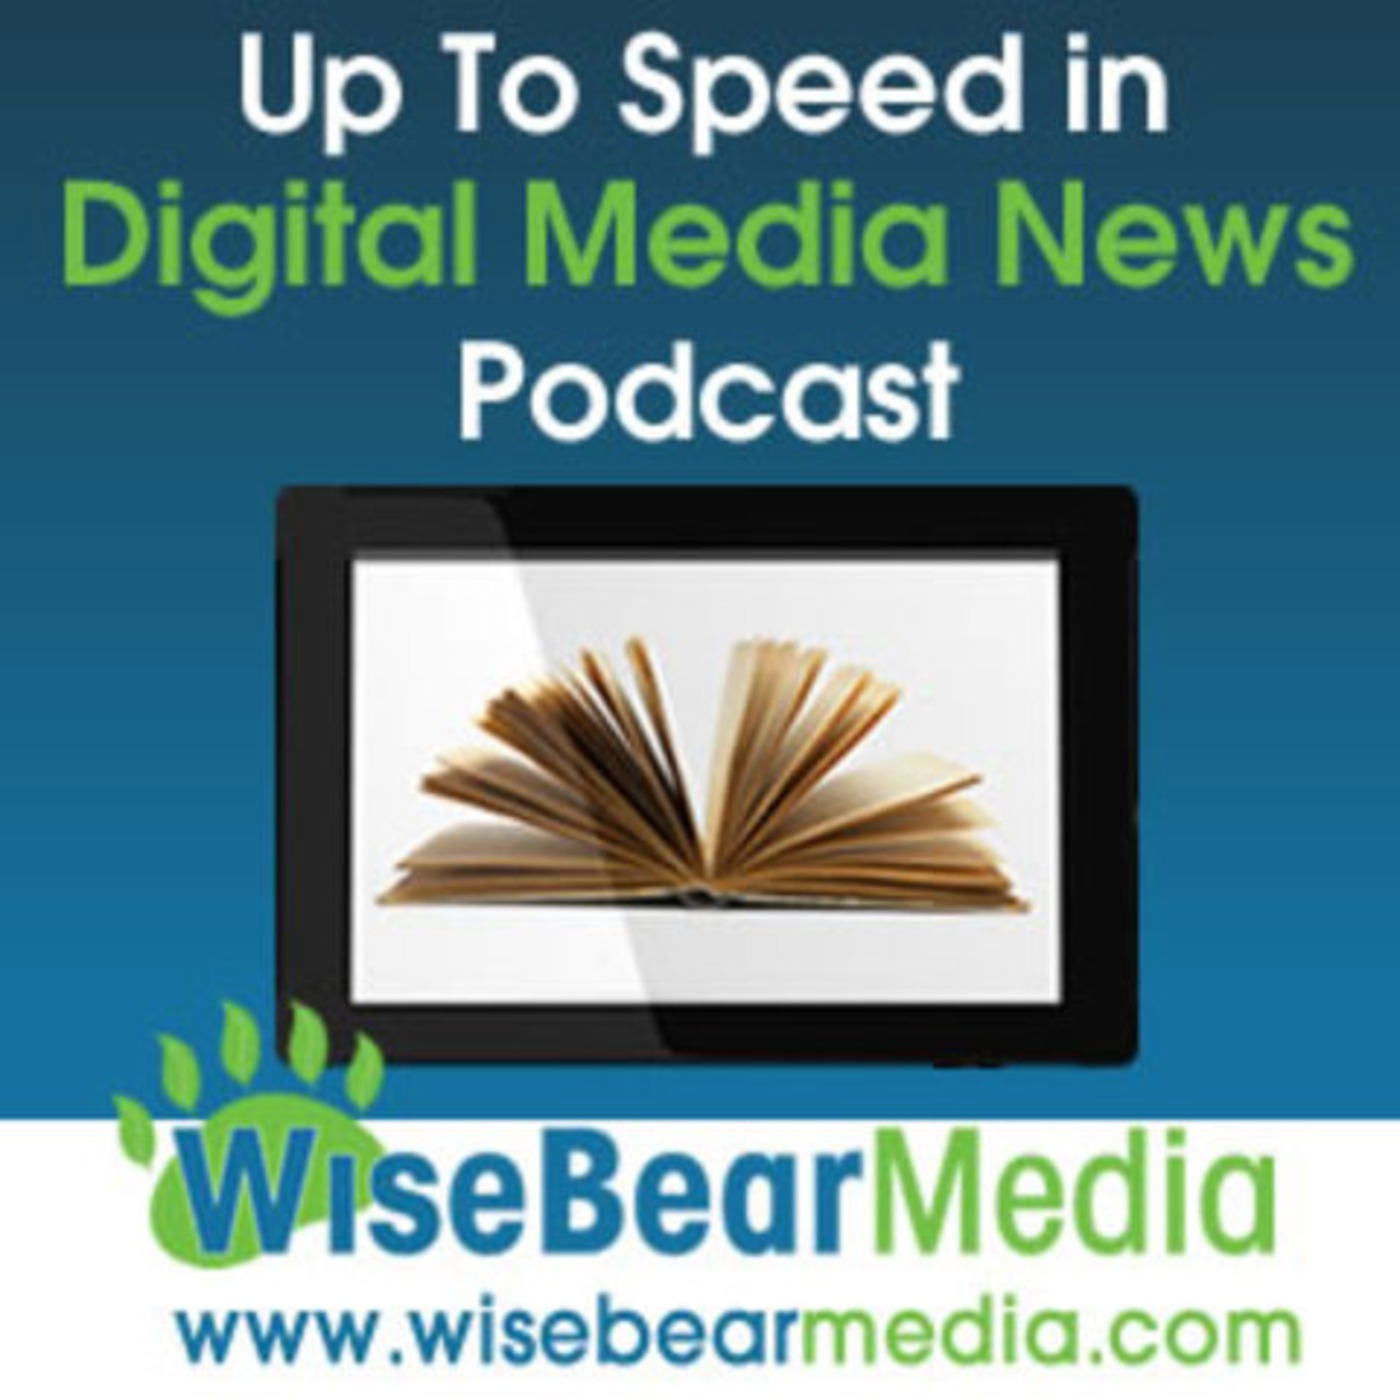 Up To Speed in Digital Media News